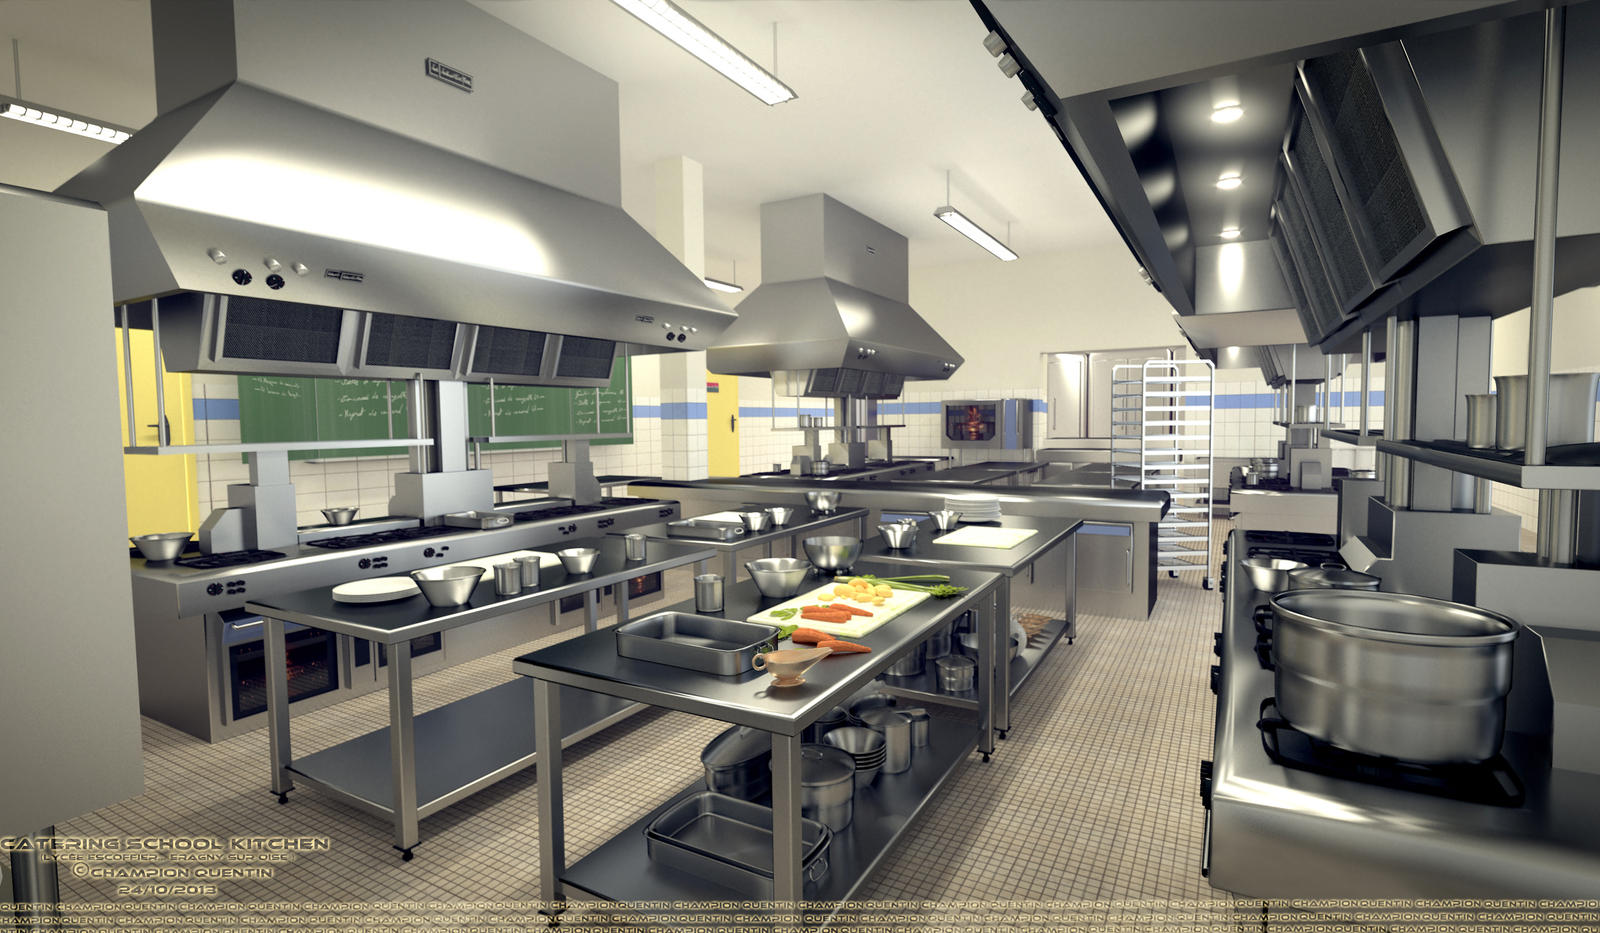 Superb Kitchen Of Catering School Escoffier By MrSvein872 Kitchen Of Catering  School Escoffier By MrSvein872